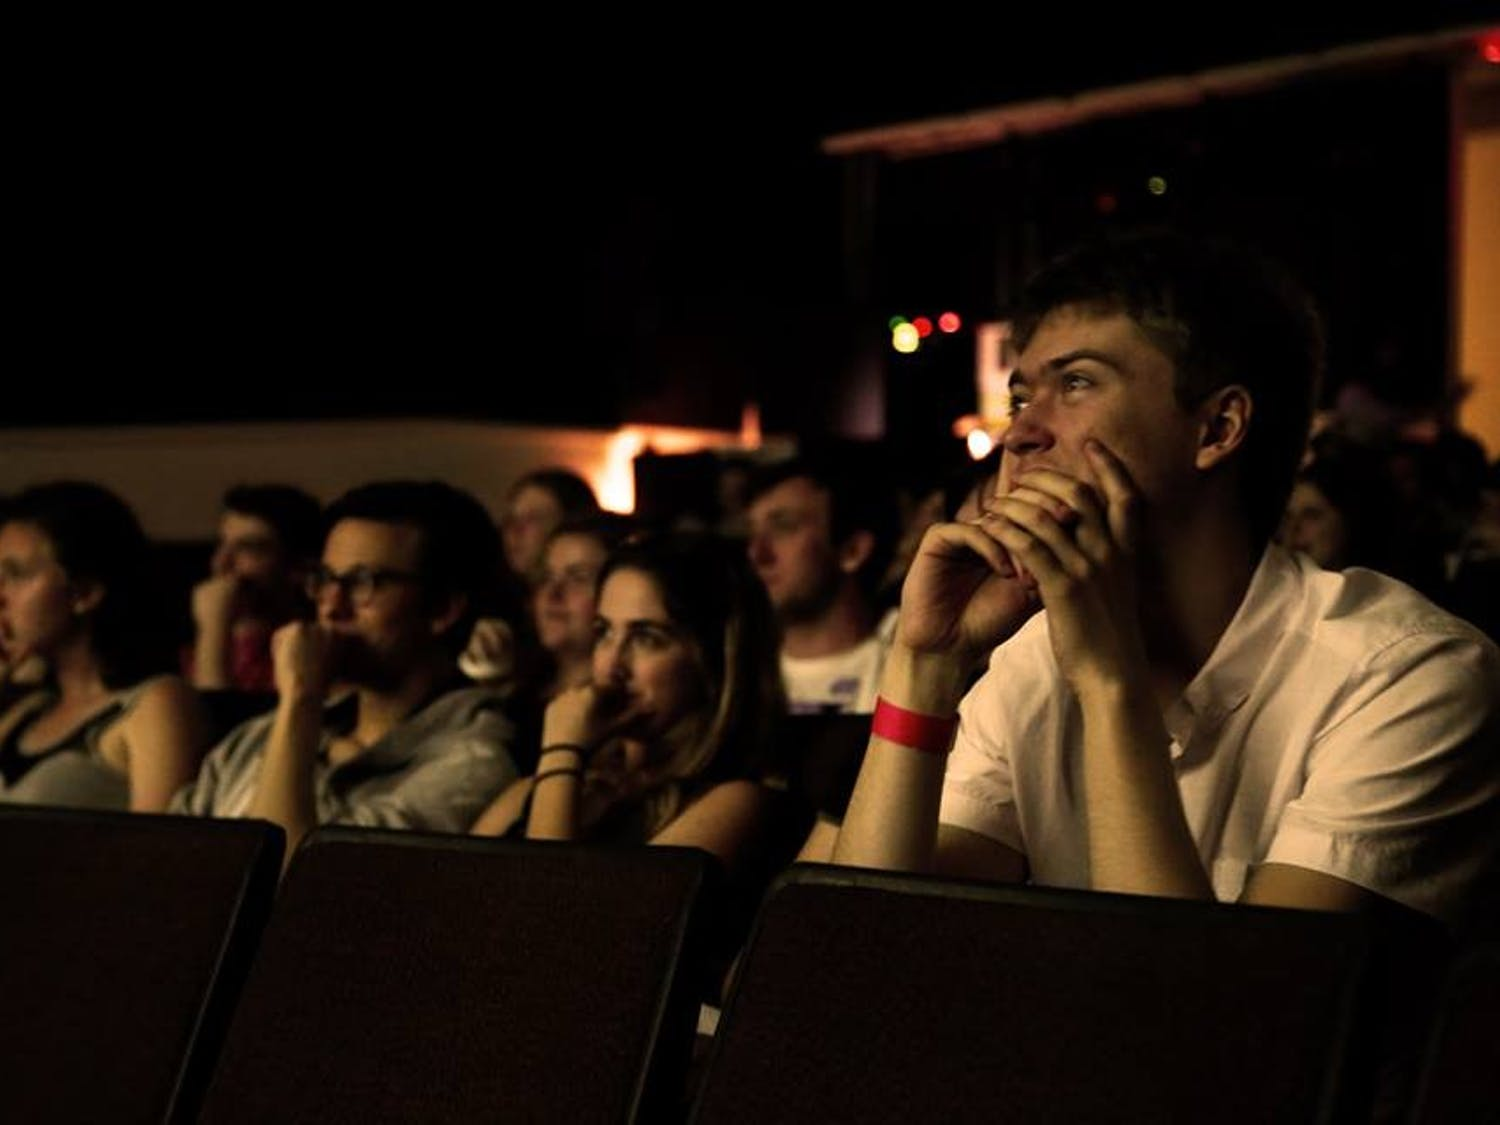 The Swain Lot Film Festival features films made by UNC students. Photo courtesy of Hollie Rutledge.